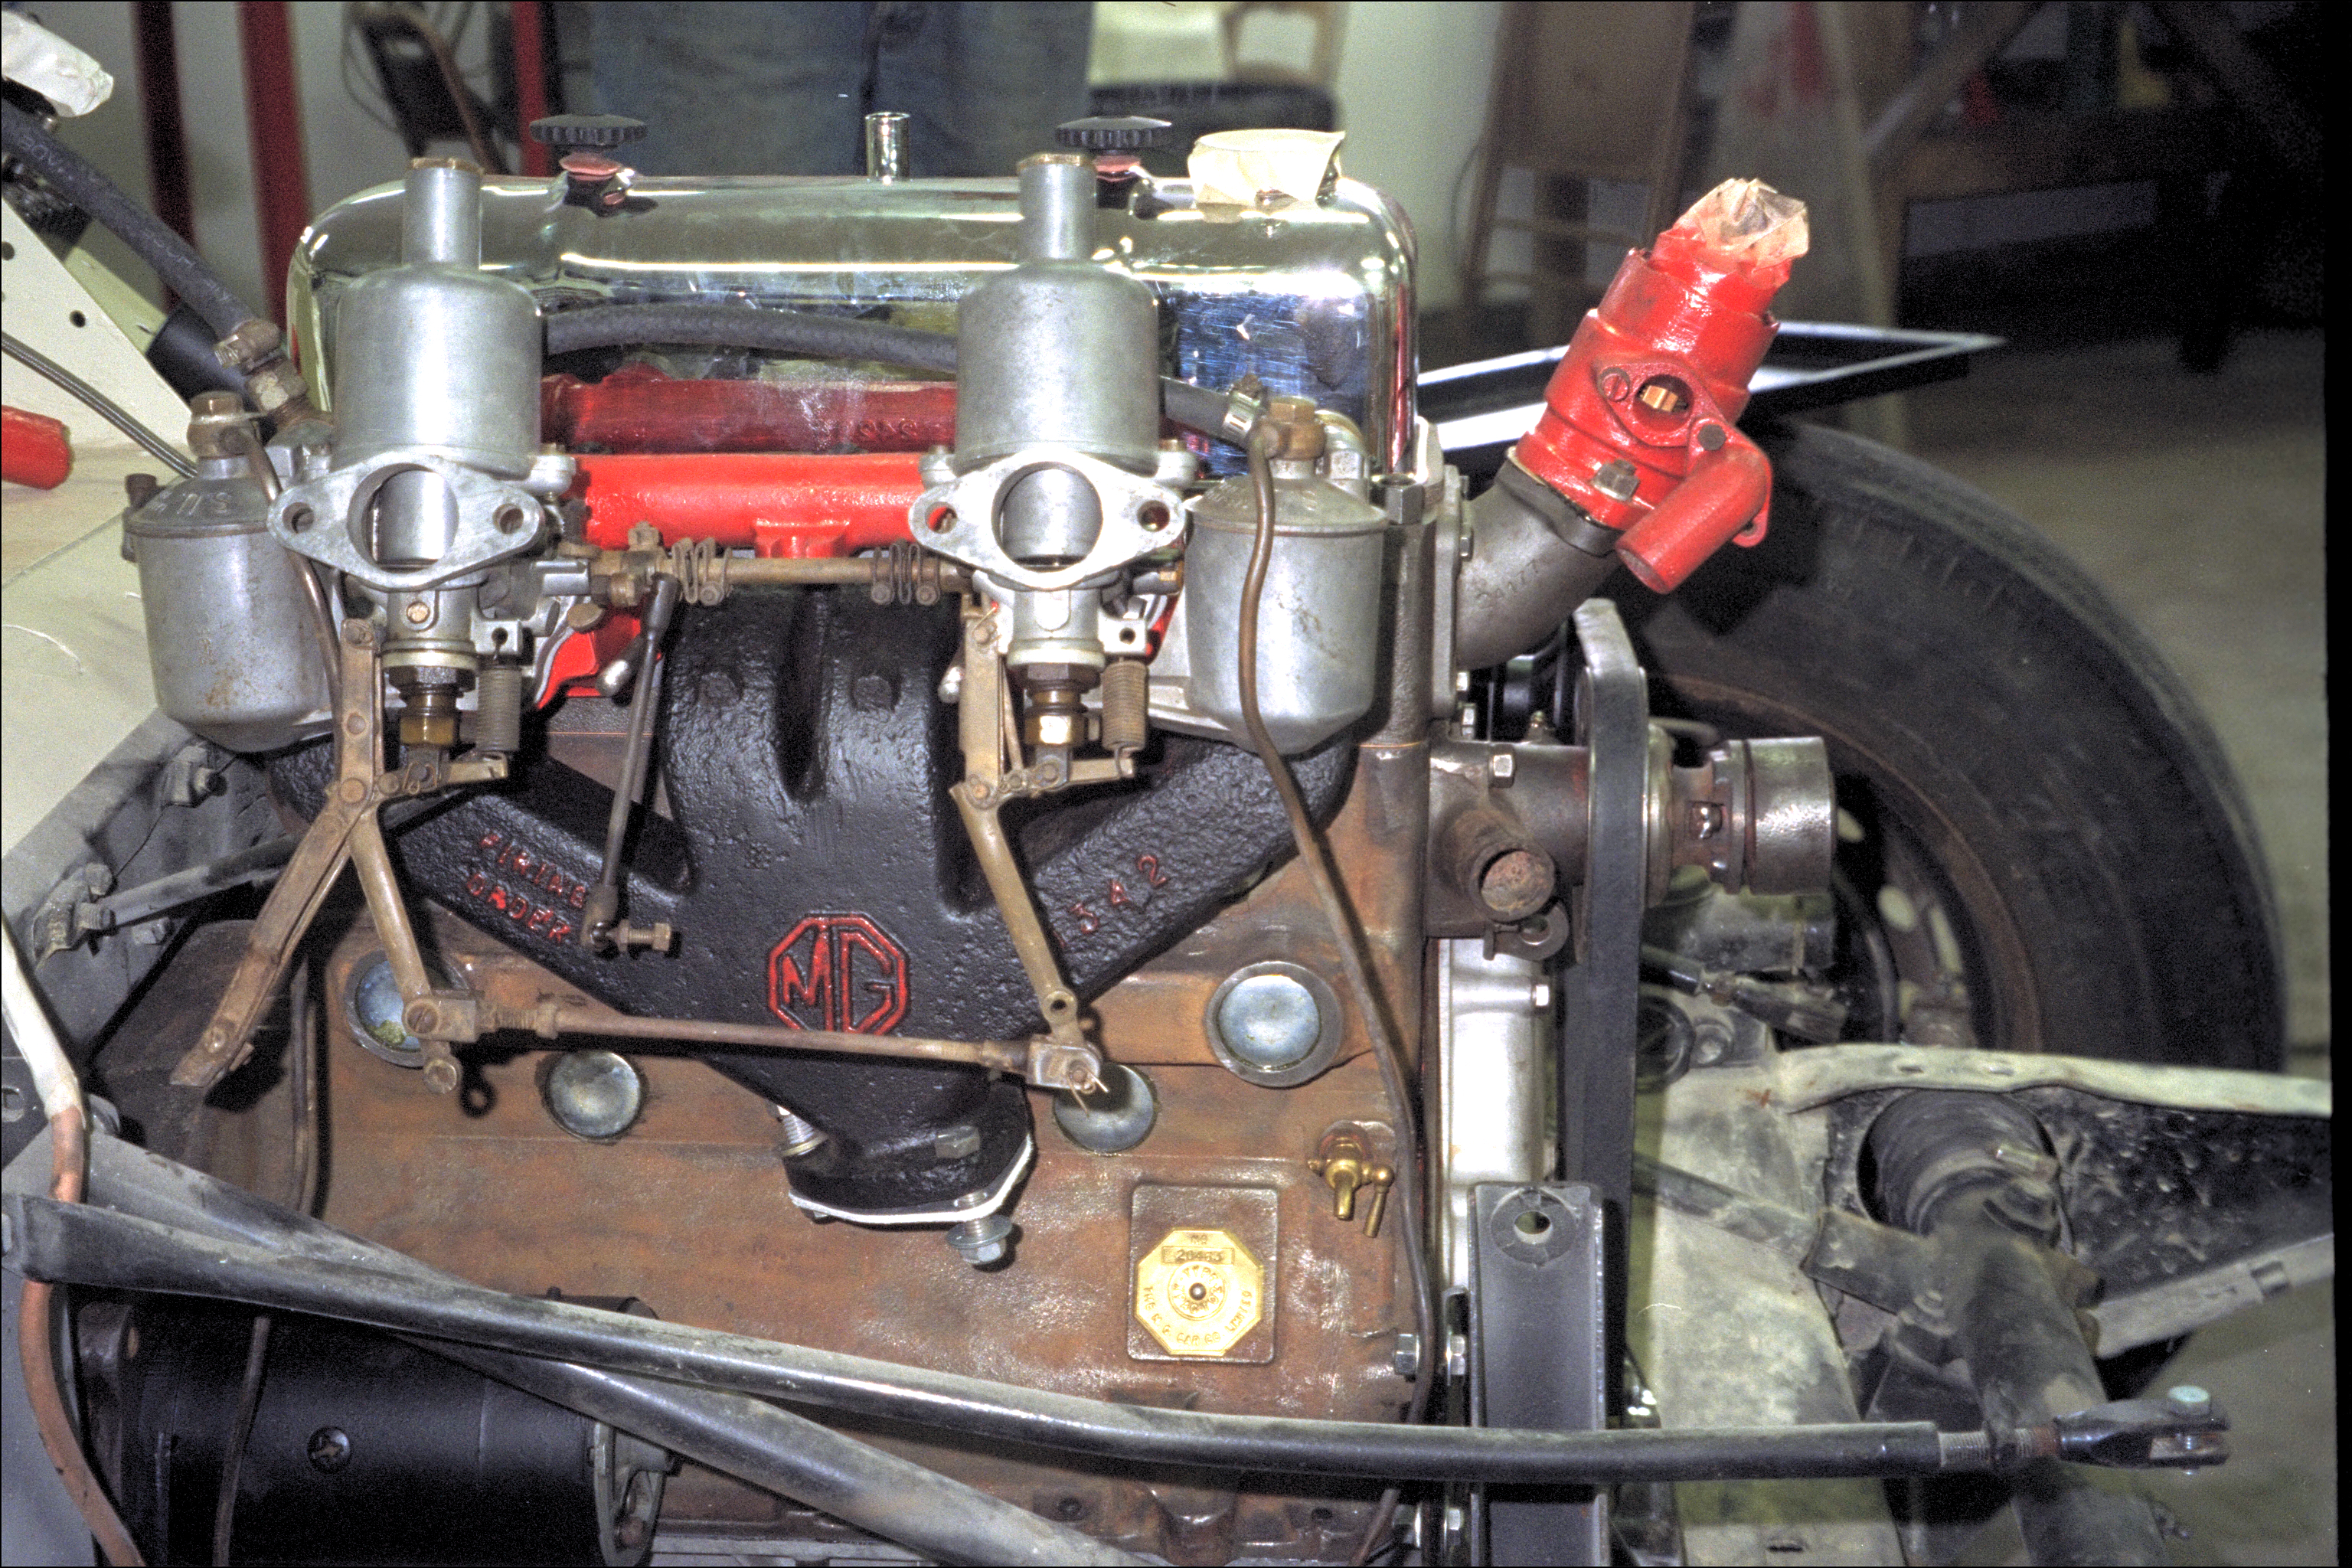 Manifold and carbs mounted on block